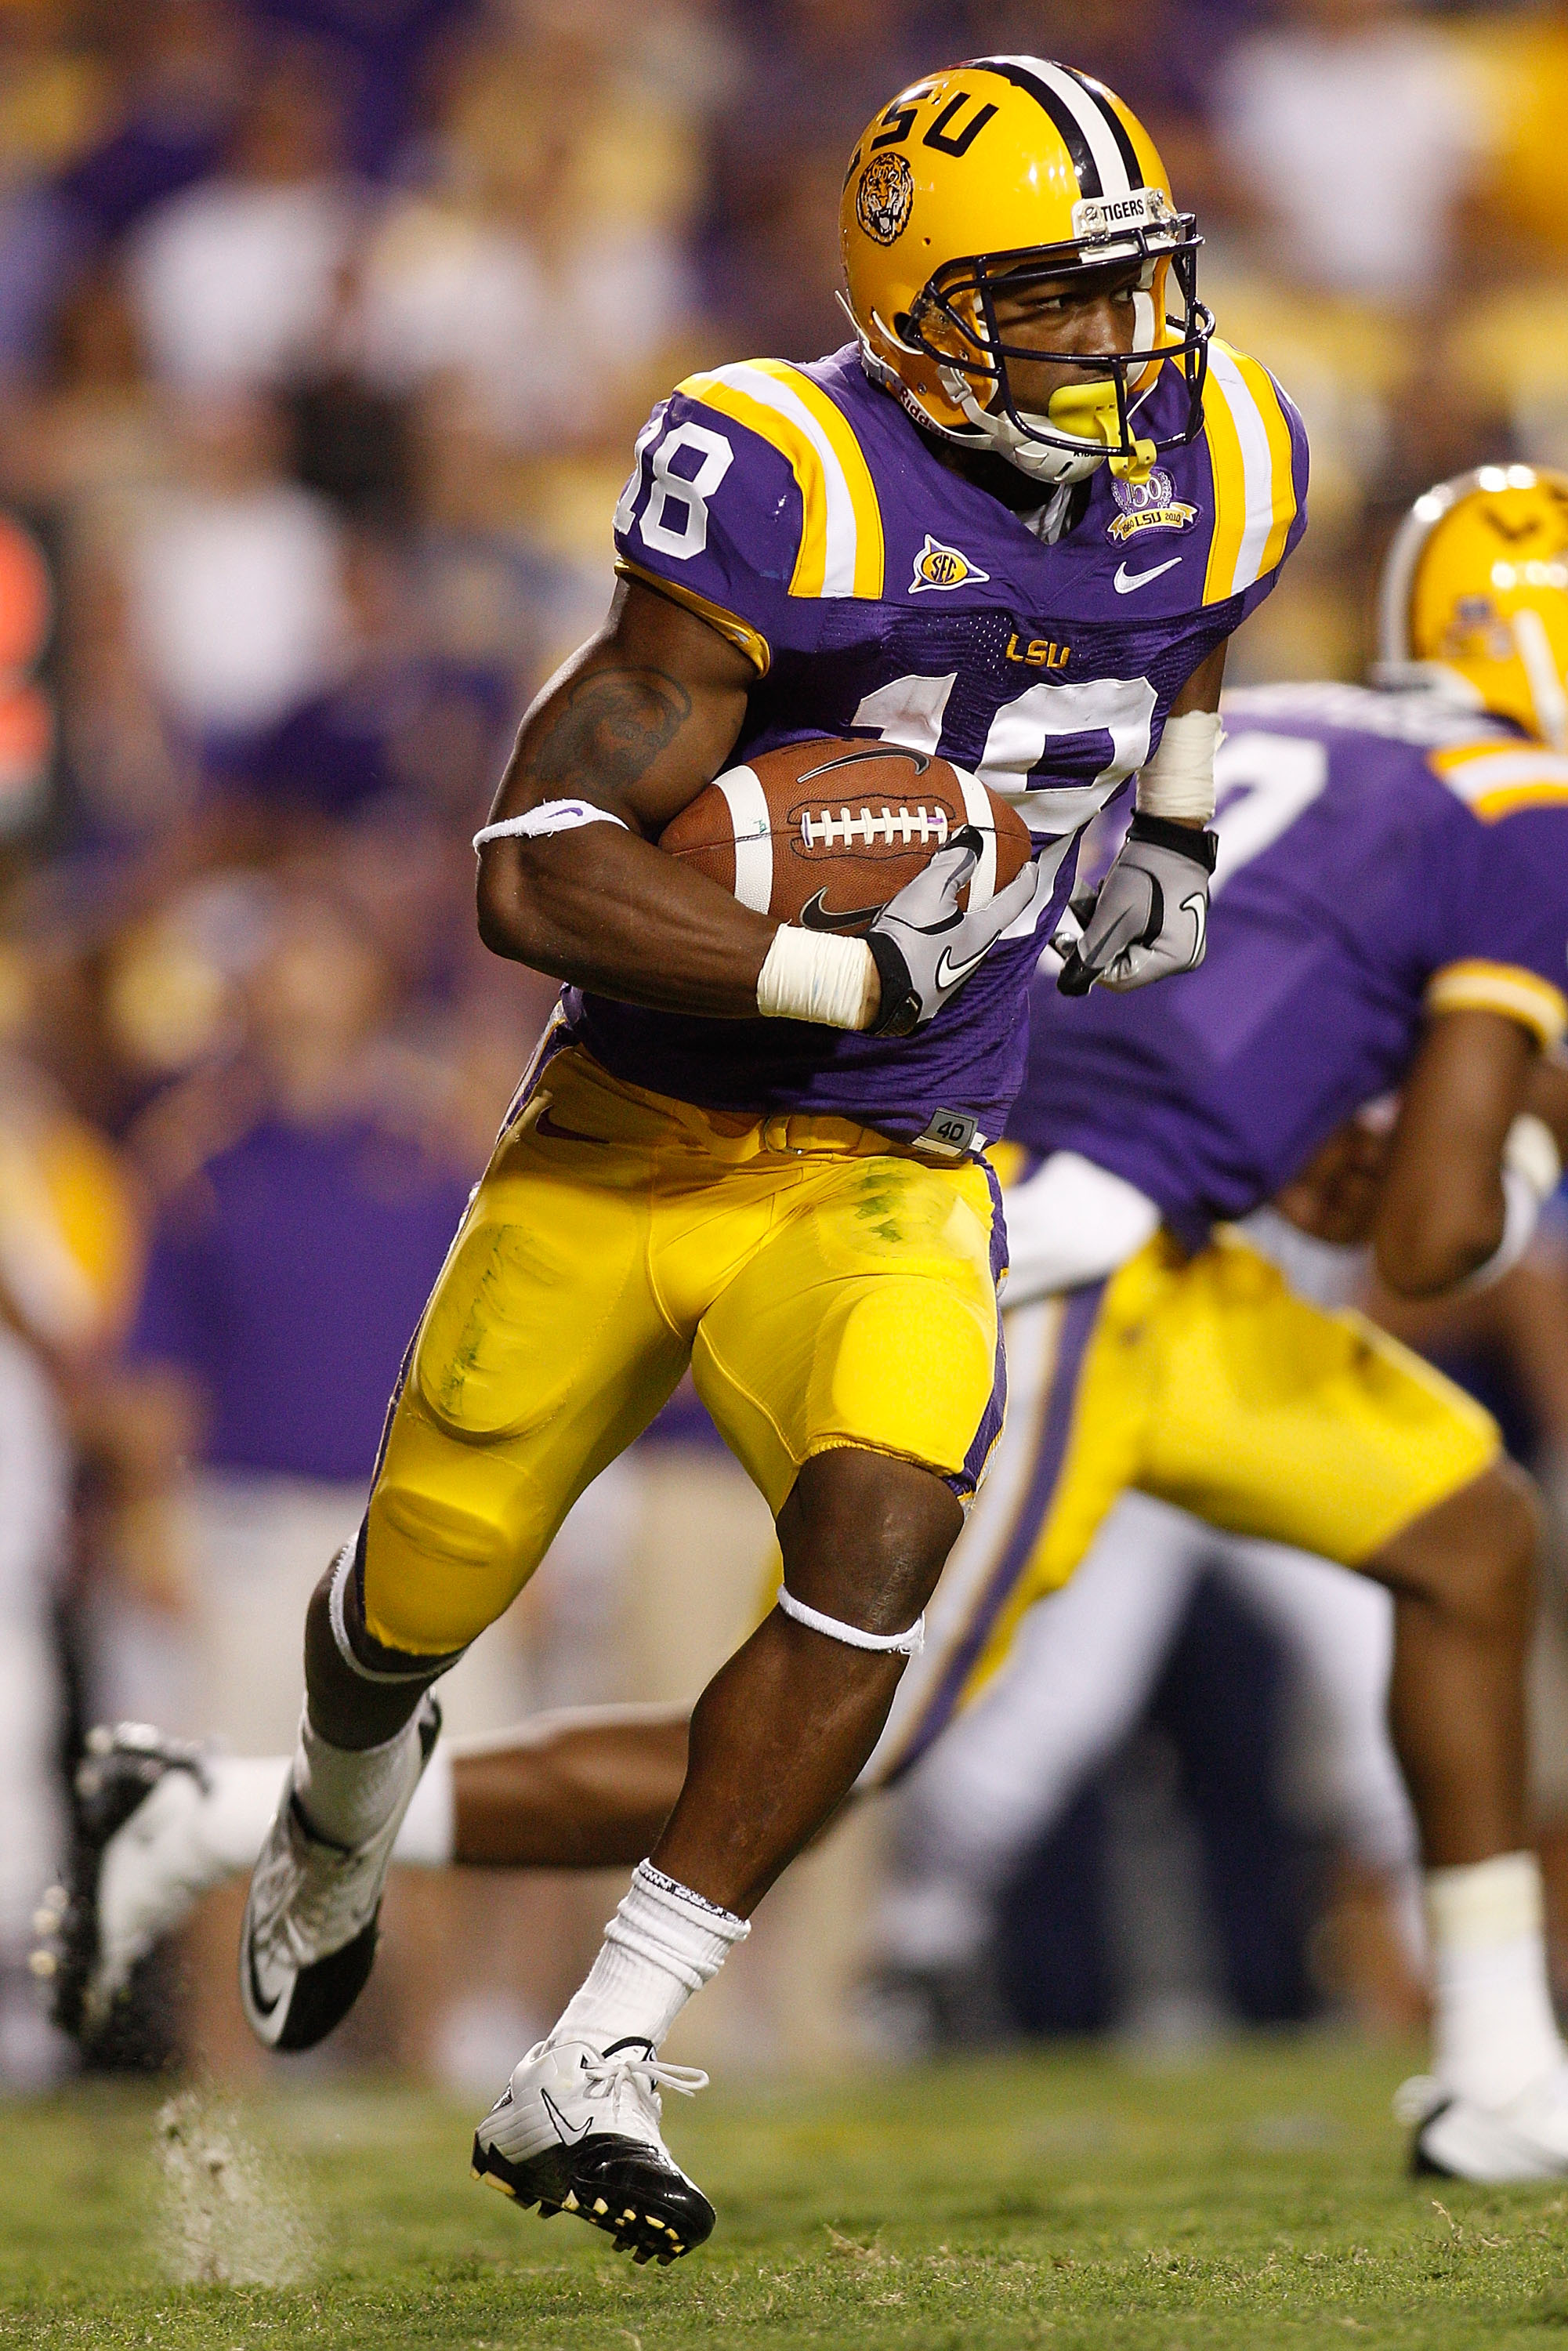 BATON ROUGE, LA - OCTOBER 16:  Richard Murphy #18 of the Louisiana State University Tigers runs the ball against the McNeese State Cowboys at Tiger Stadium on October 16, 2010 in Baton Rouge, Louisiana.  (Photo by Chris Graythen/Getty Images)